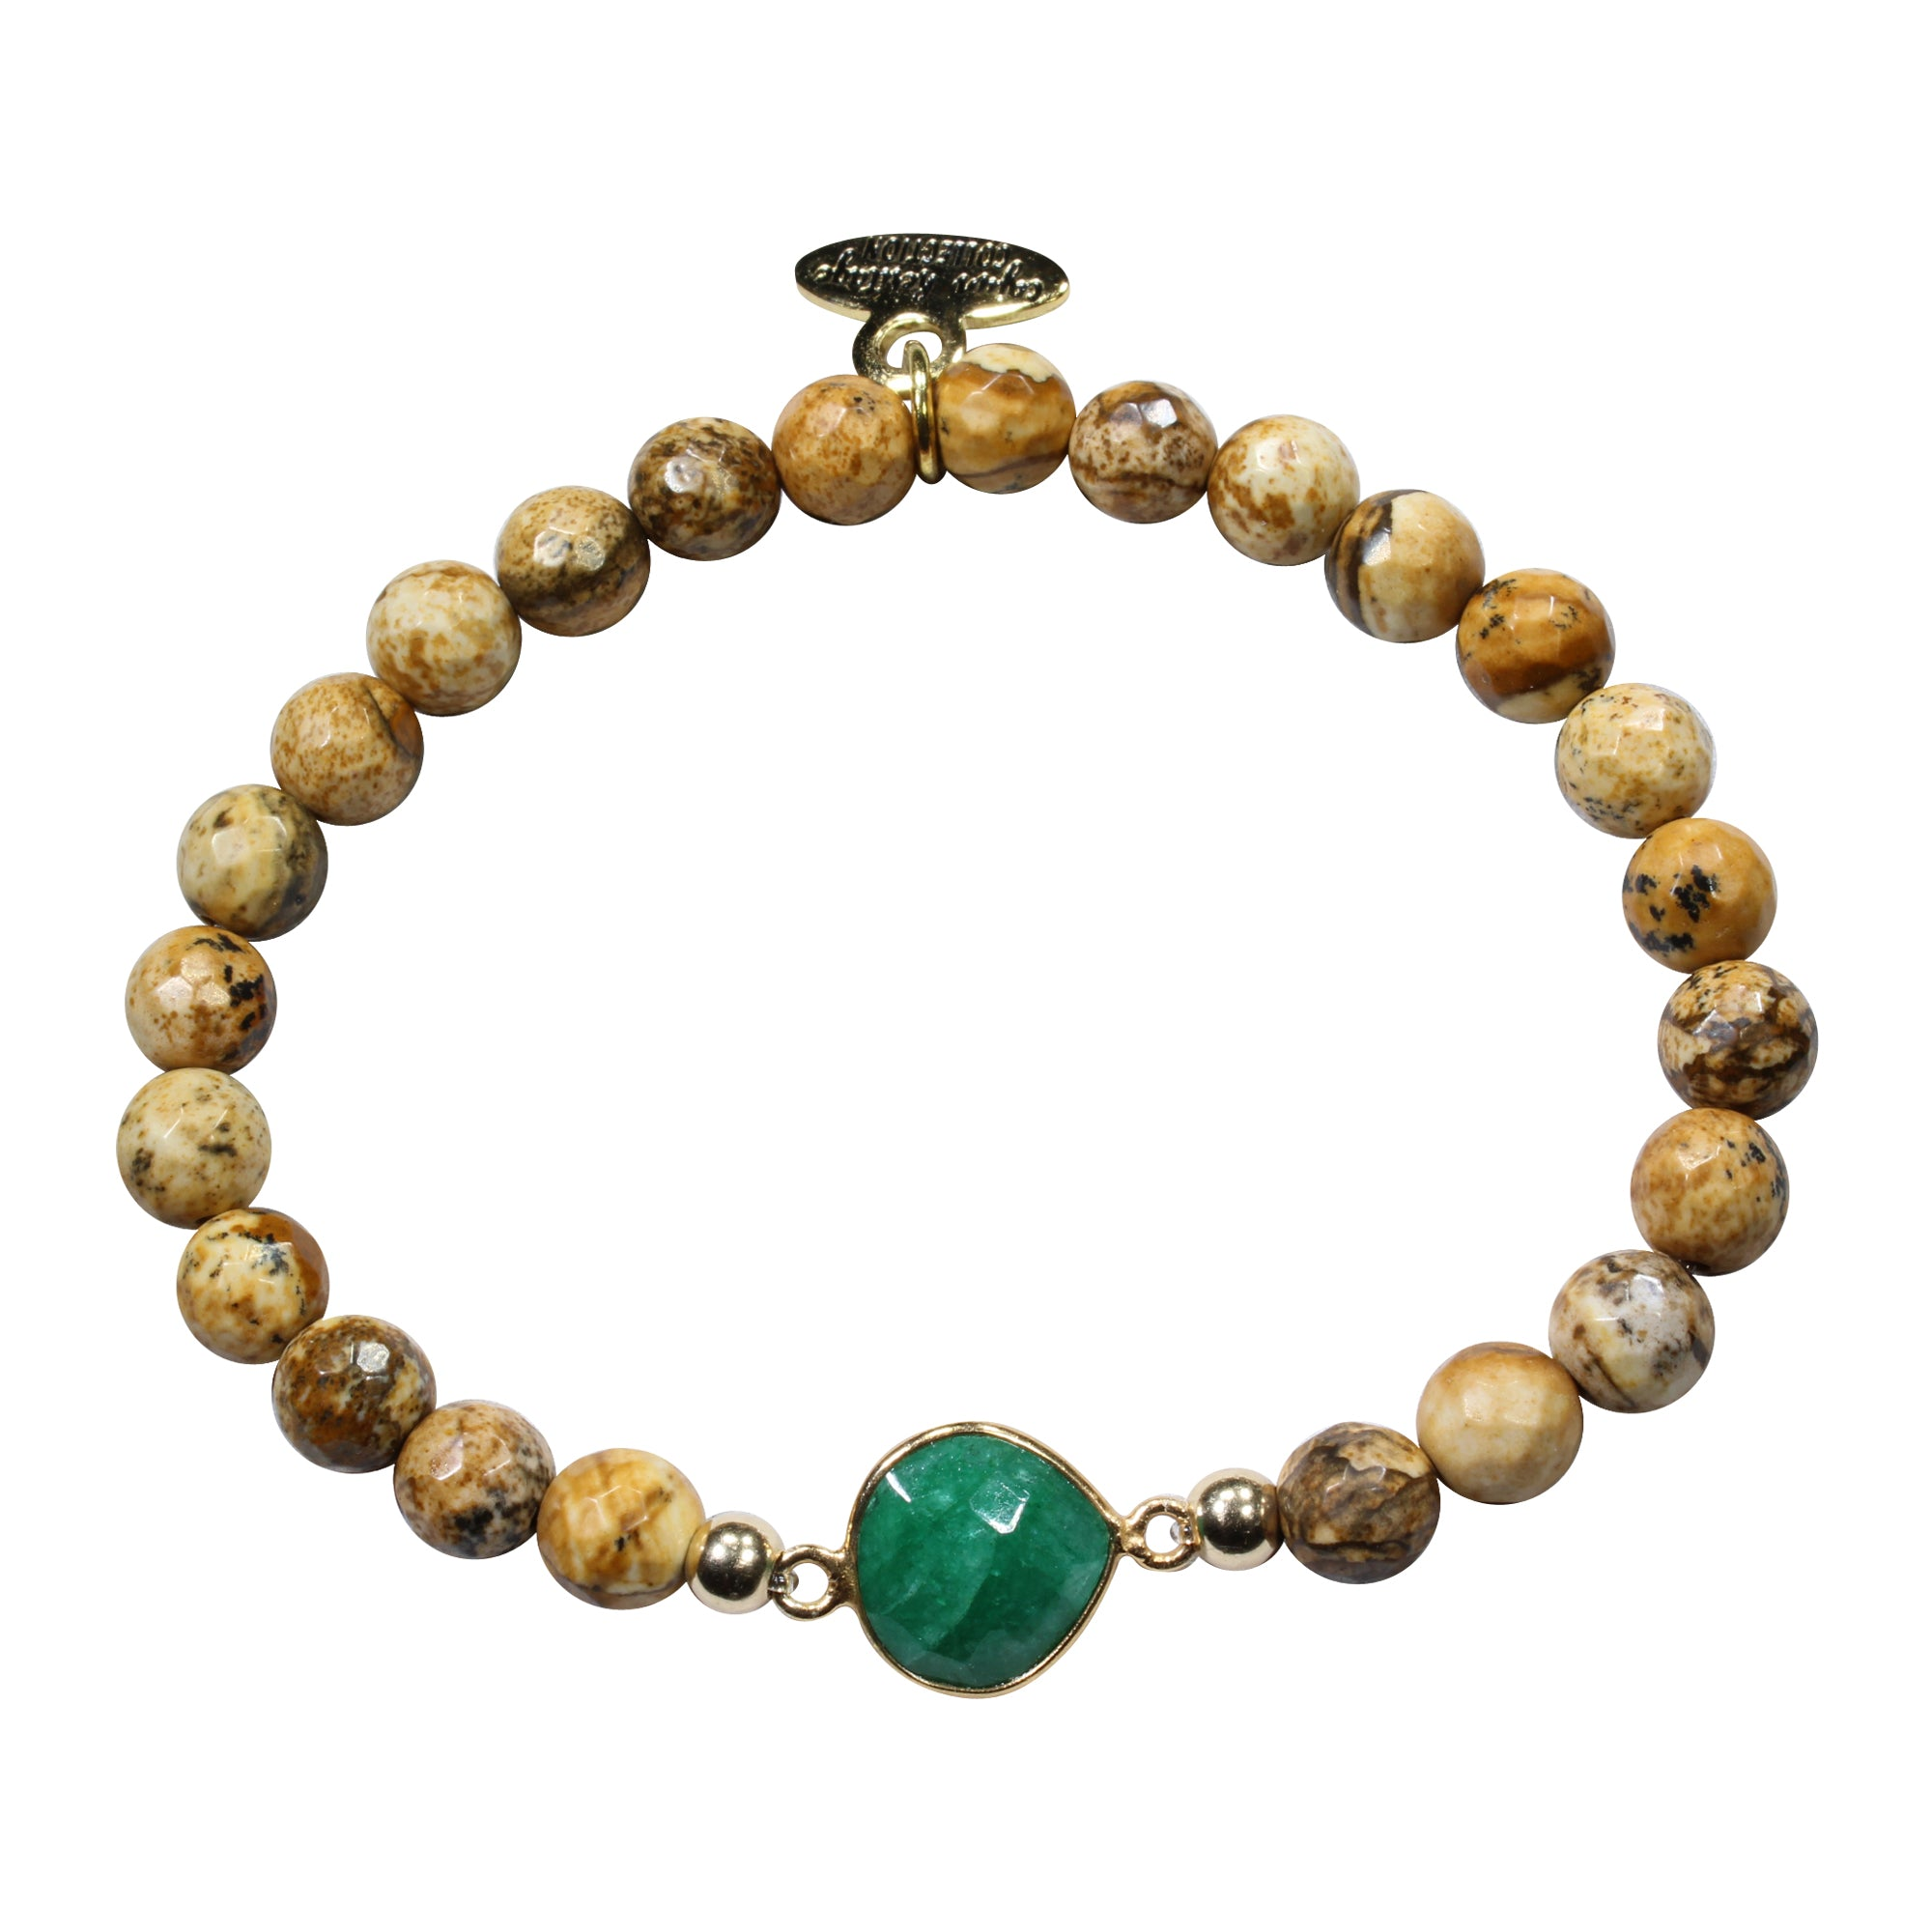 by products love girl friendship gold you emerald bracelet sunday amy i